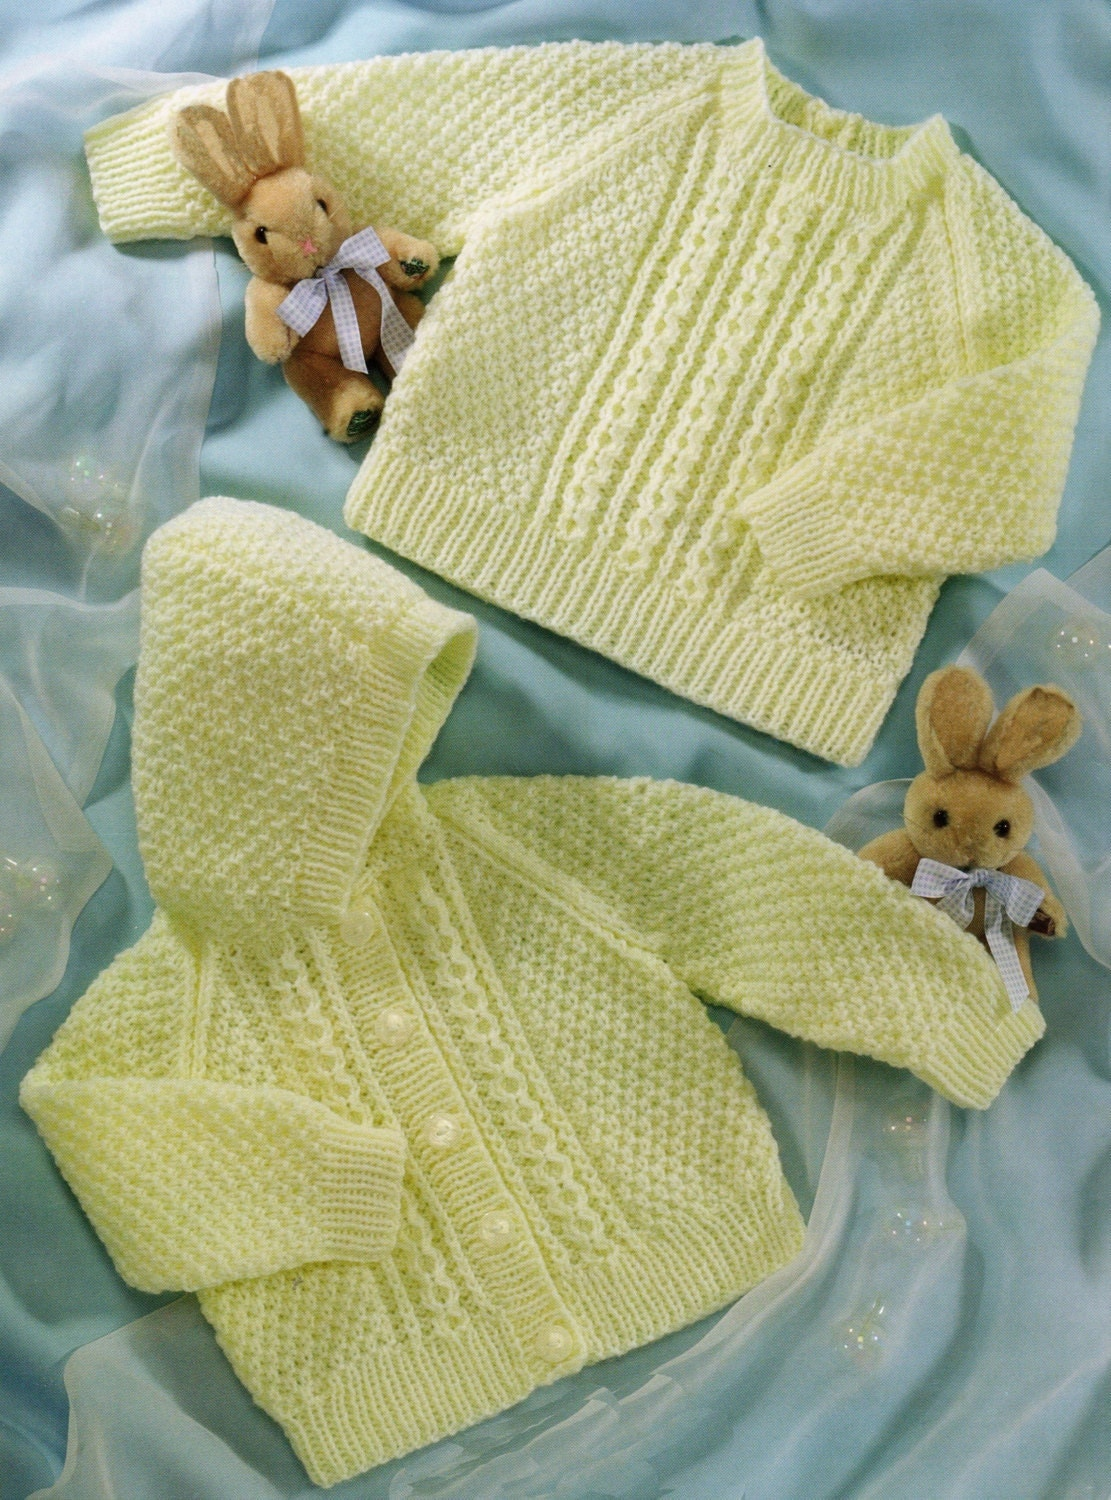 Knitting Pattern Hooded Jacket Toddler : Babys Hooded Jacket and Sweater Knitting Pattern Birth to